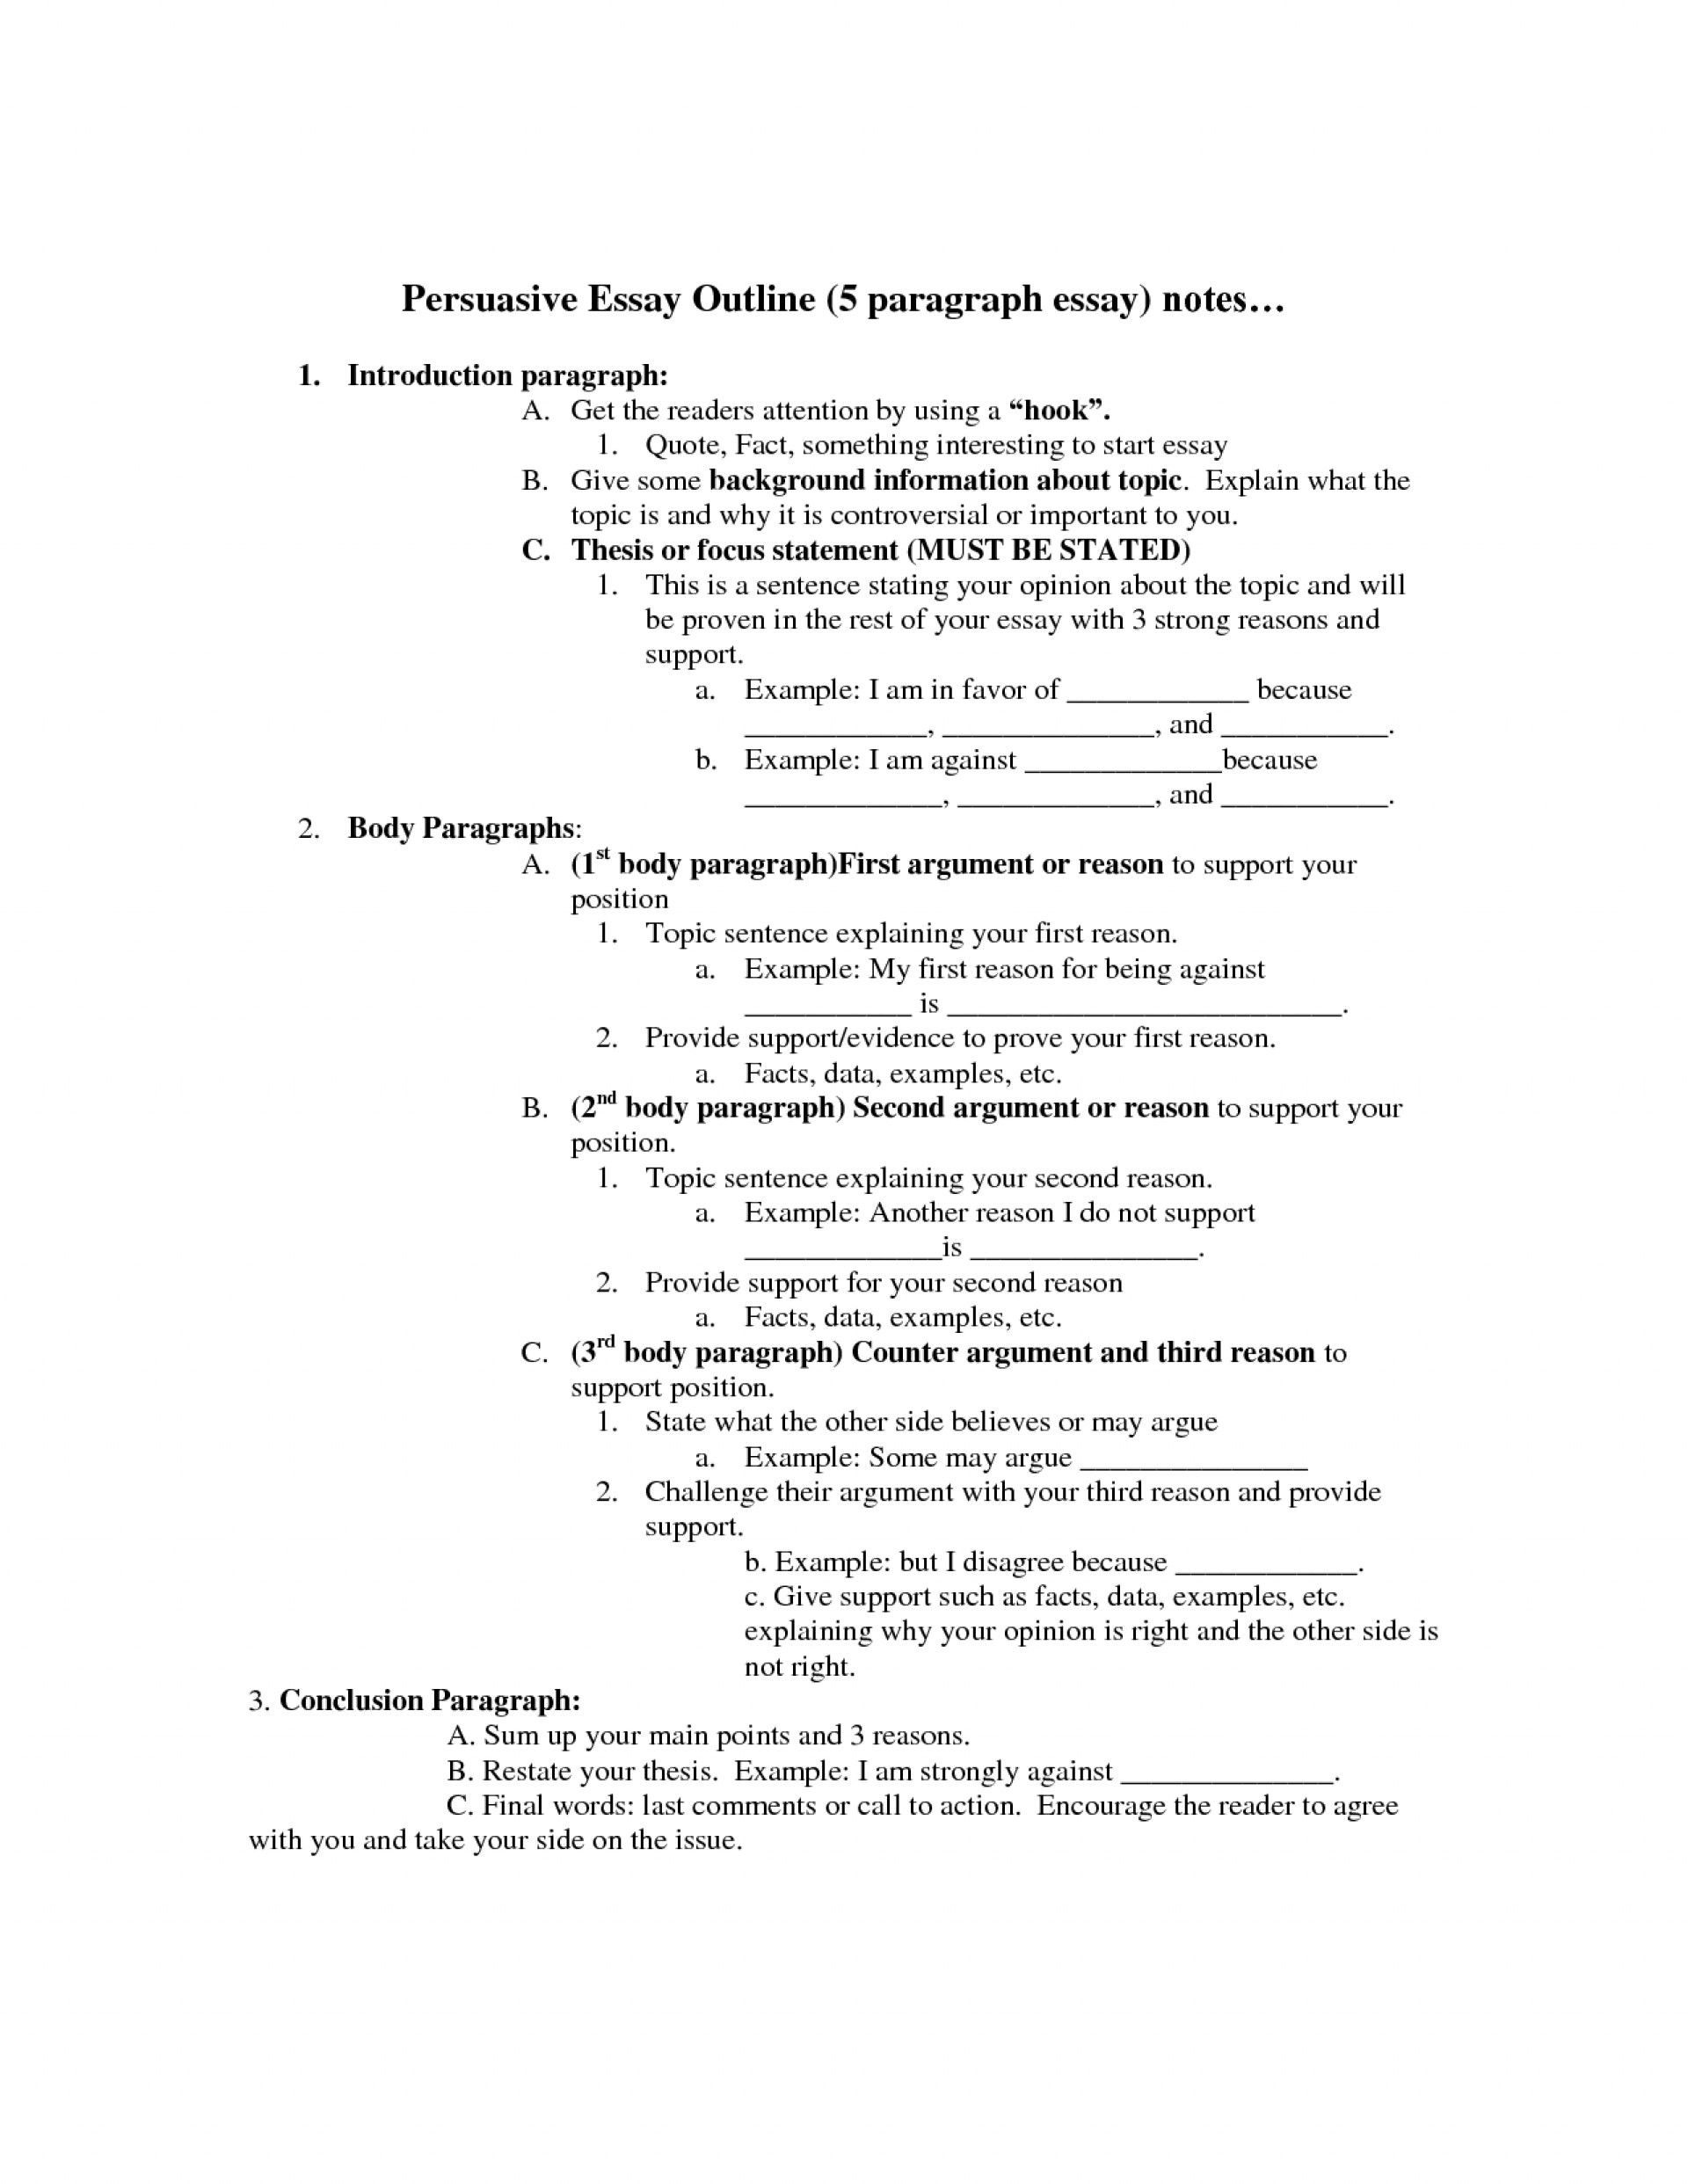 002 Persuasive Essay Outline Example Top Apa Format Template Word 2010 1920